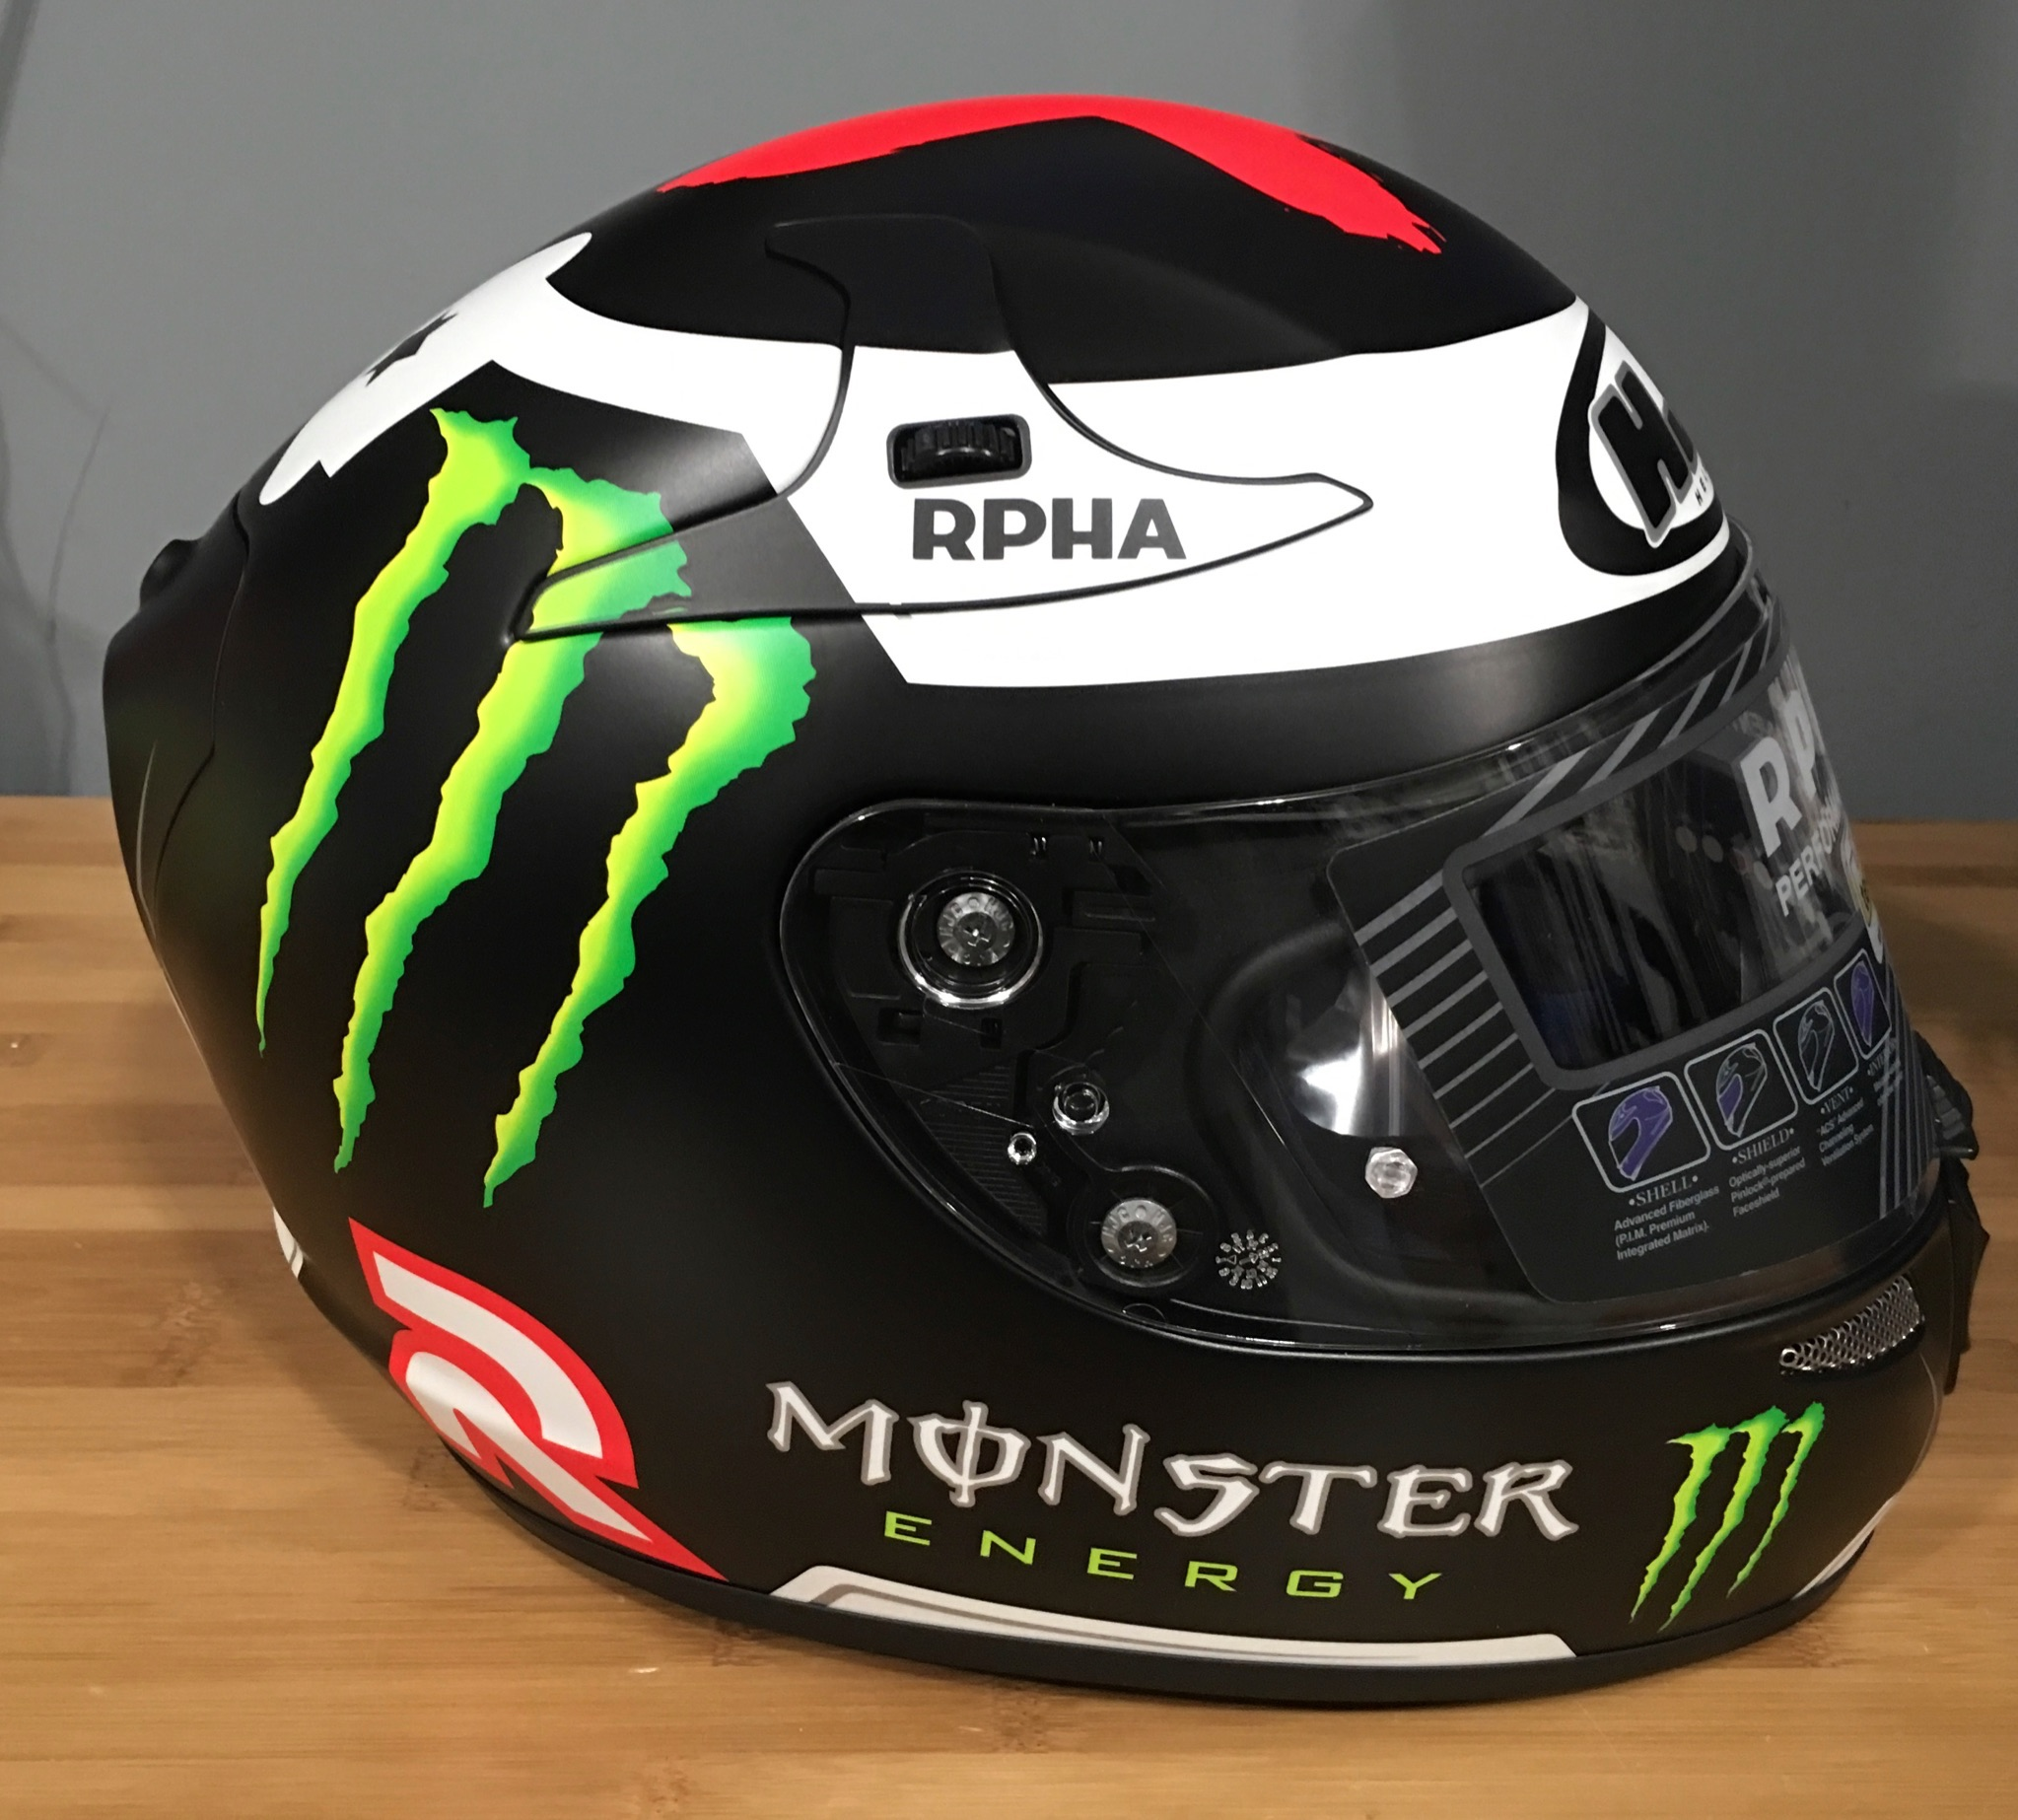 ahjc rpha 10 pro jorge lorenzo replica 3 helmet mc 1f. Black Bedroom Furniture Sets. Home Design Ideas